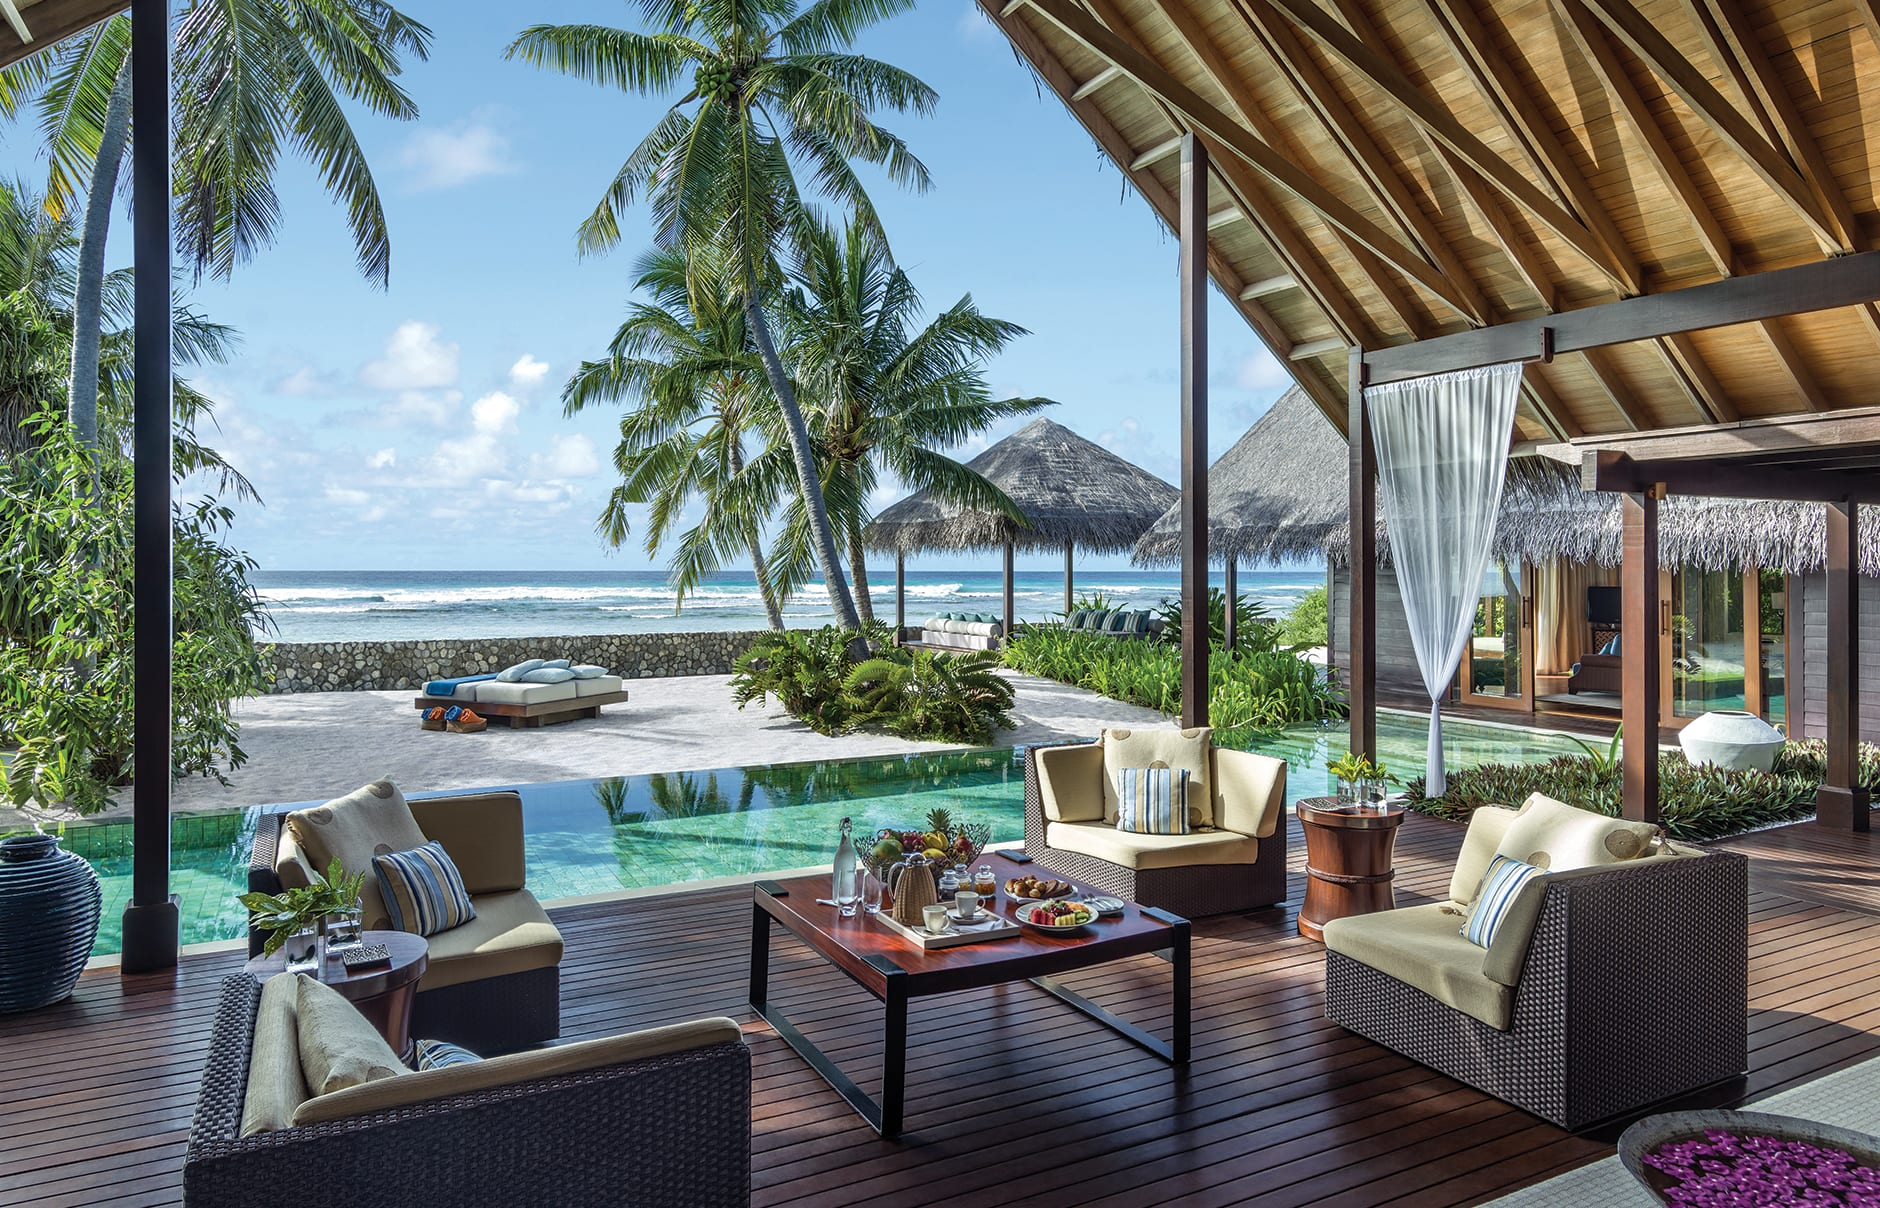 Shangri-La's Villingili Resort and Spa, Maldives. Hotel Review by TravelPlusStyle. Photo © Shangri-La Hotels and Resorts